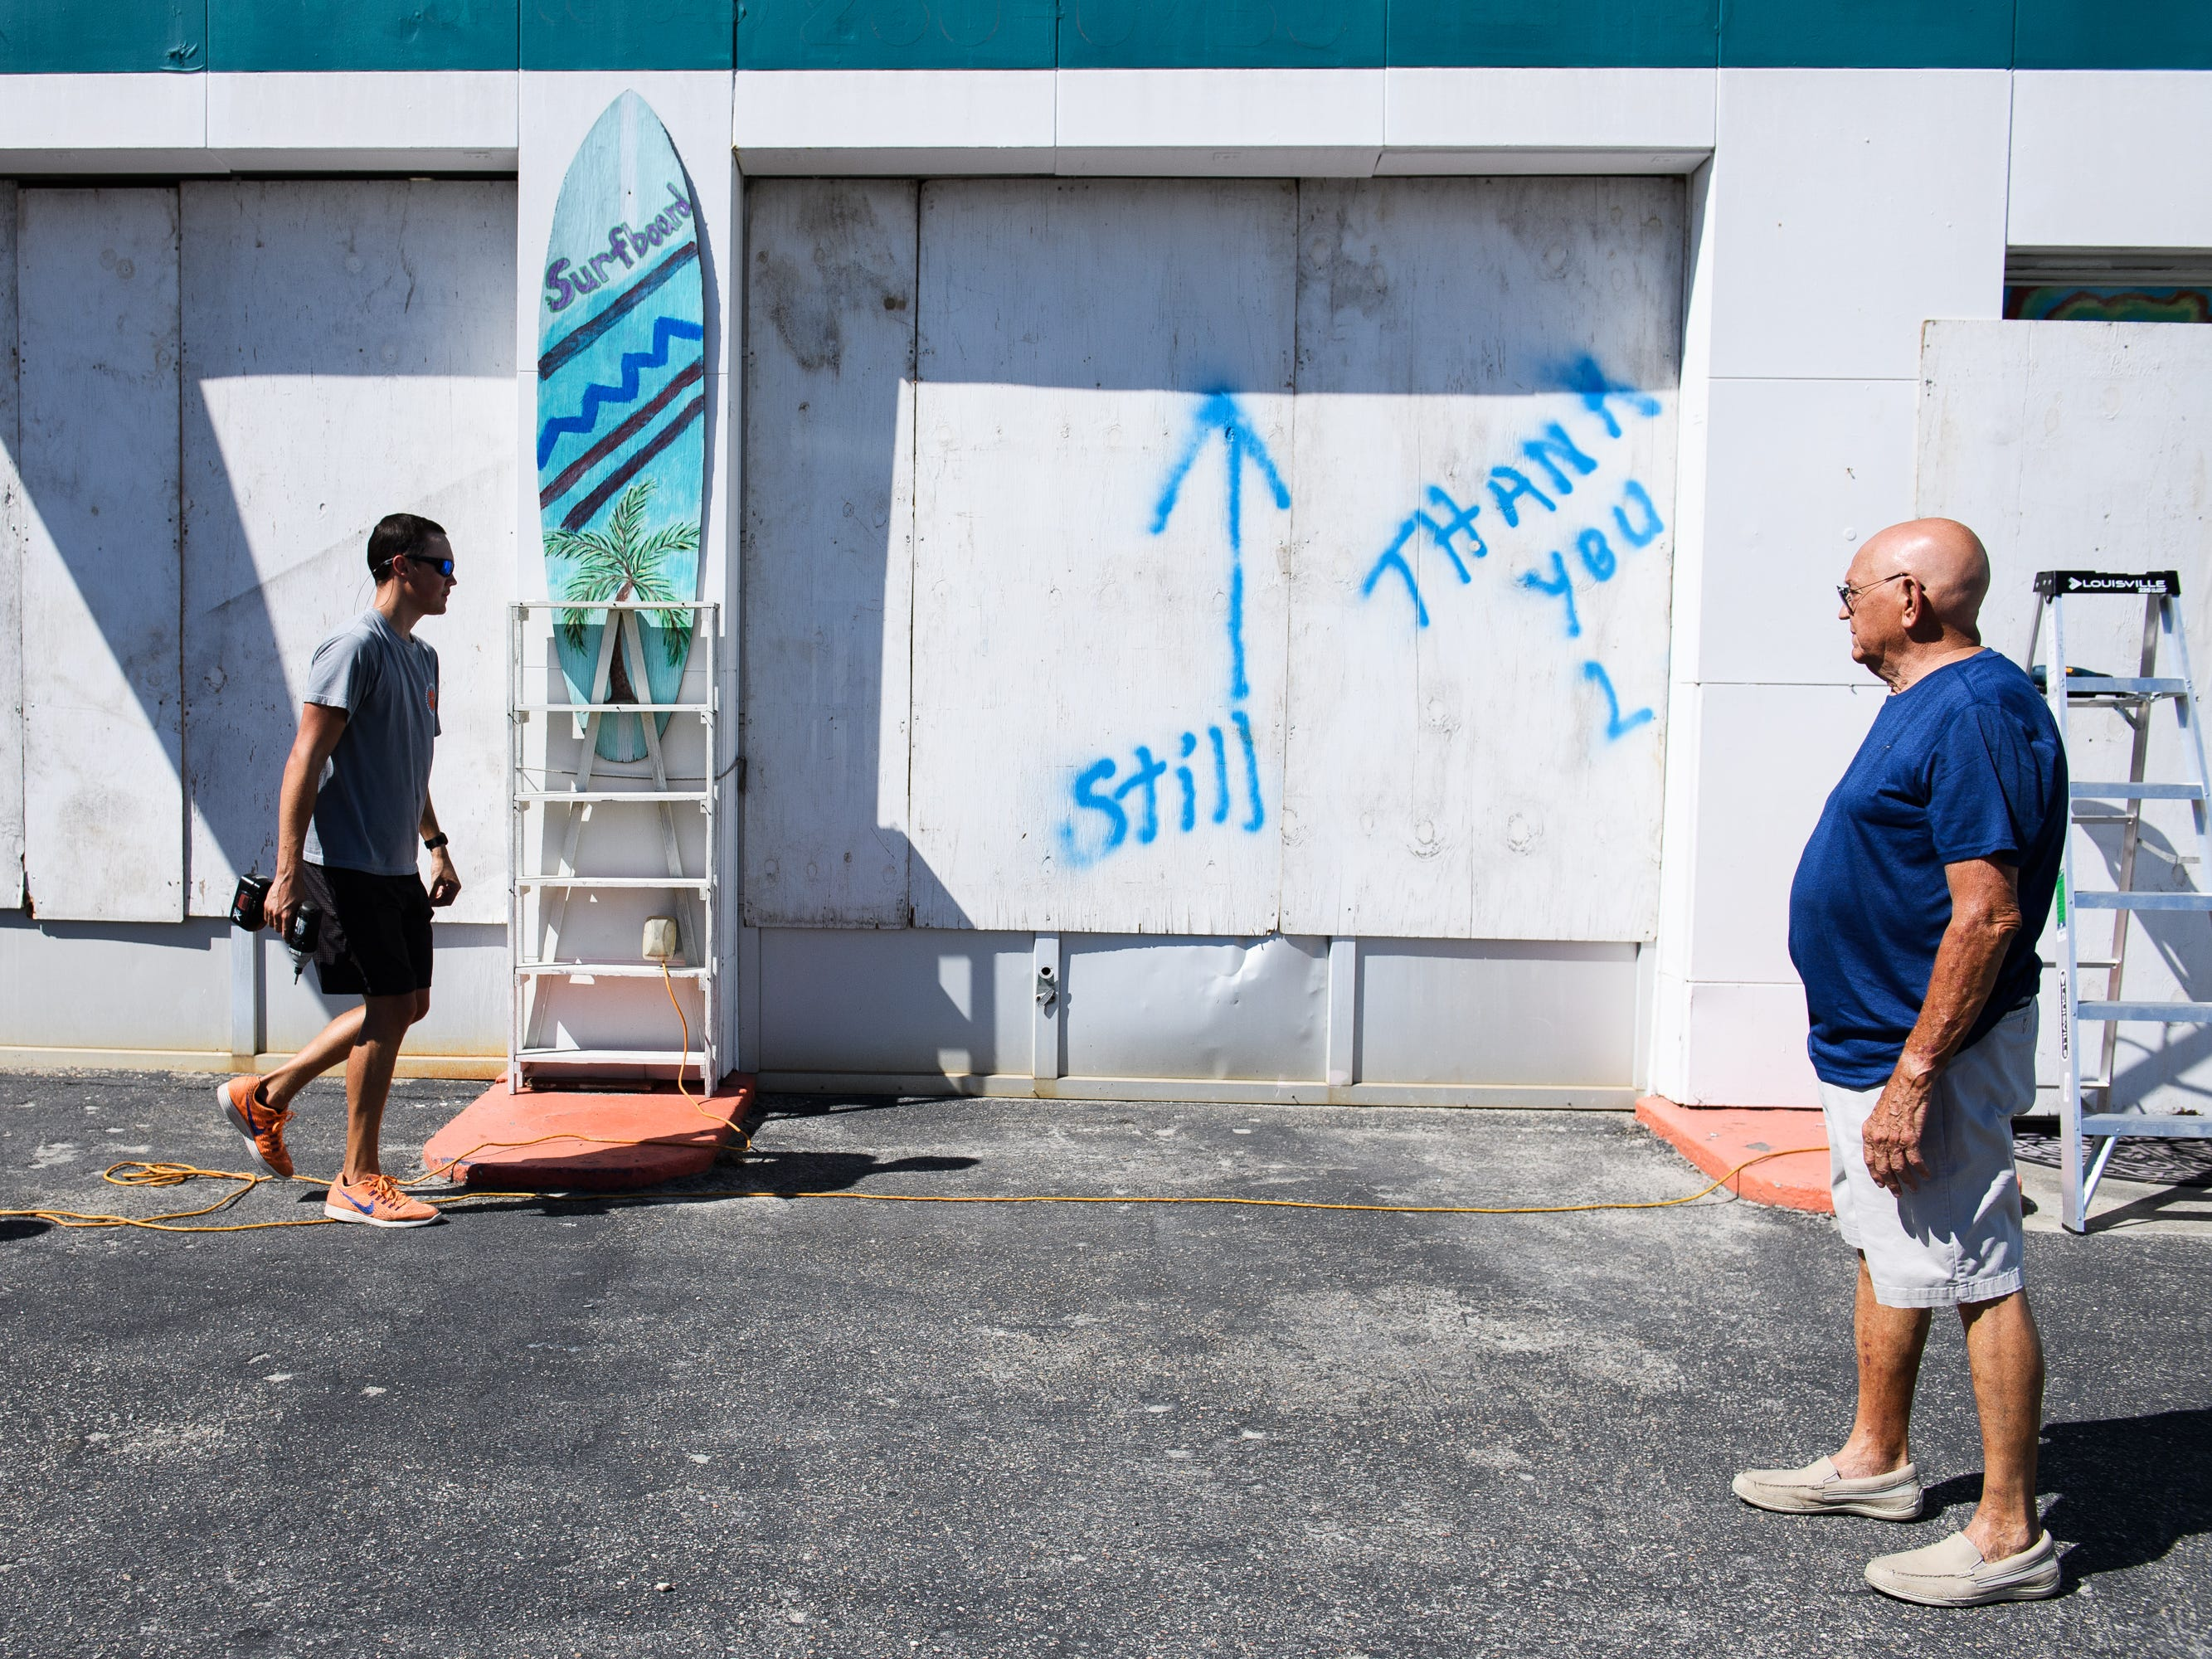 Austin Benton helps his grandfather Tracy Berry board up his business, The Wildflower, in North Myrtle Beach on Tuesday, Sept. 11, 2018.